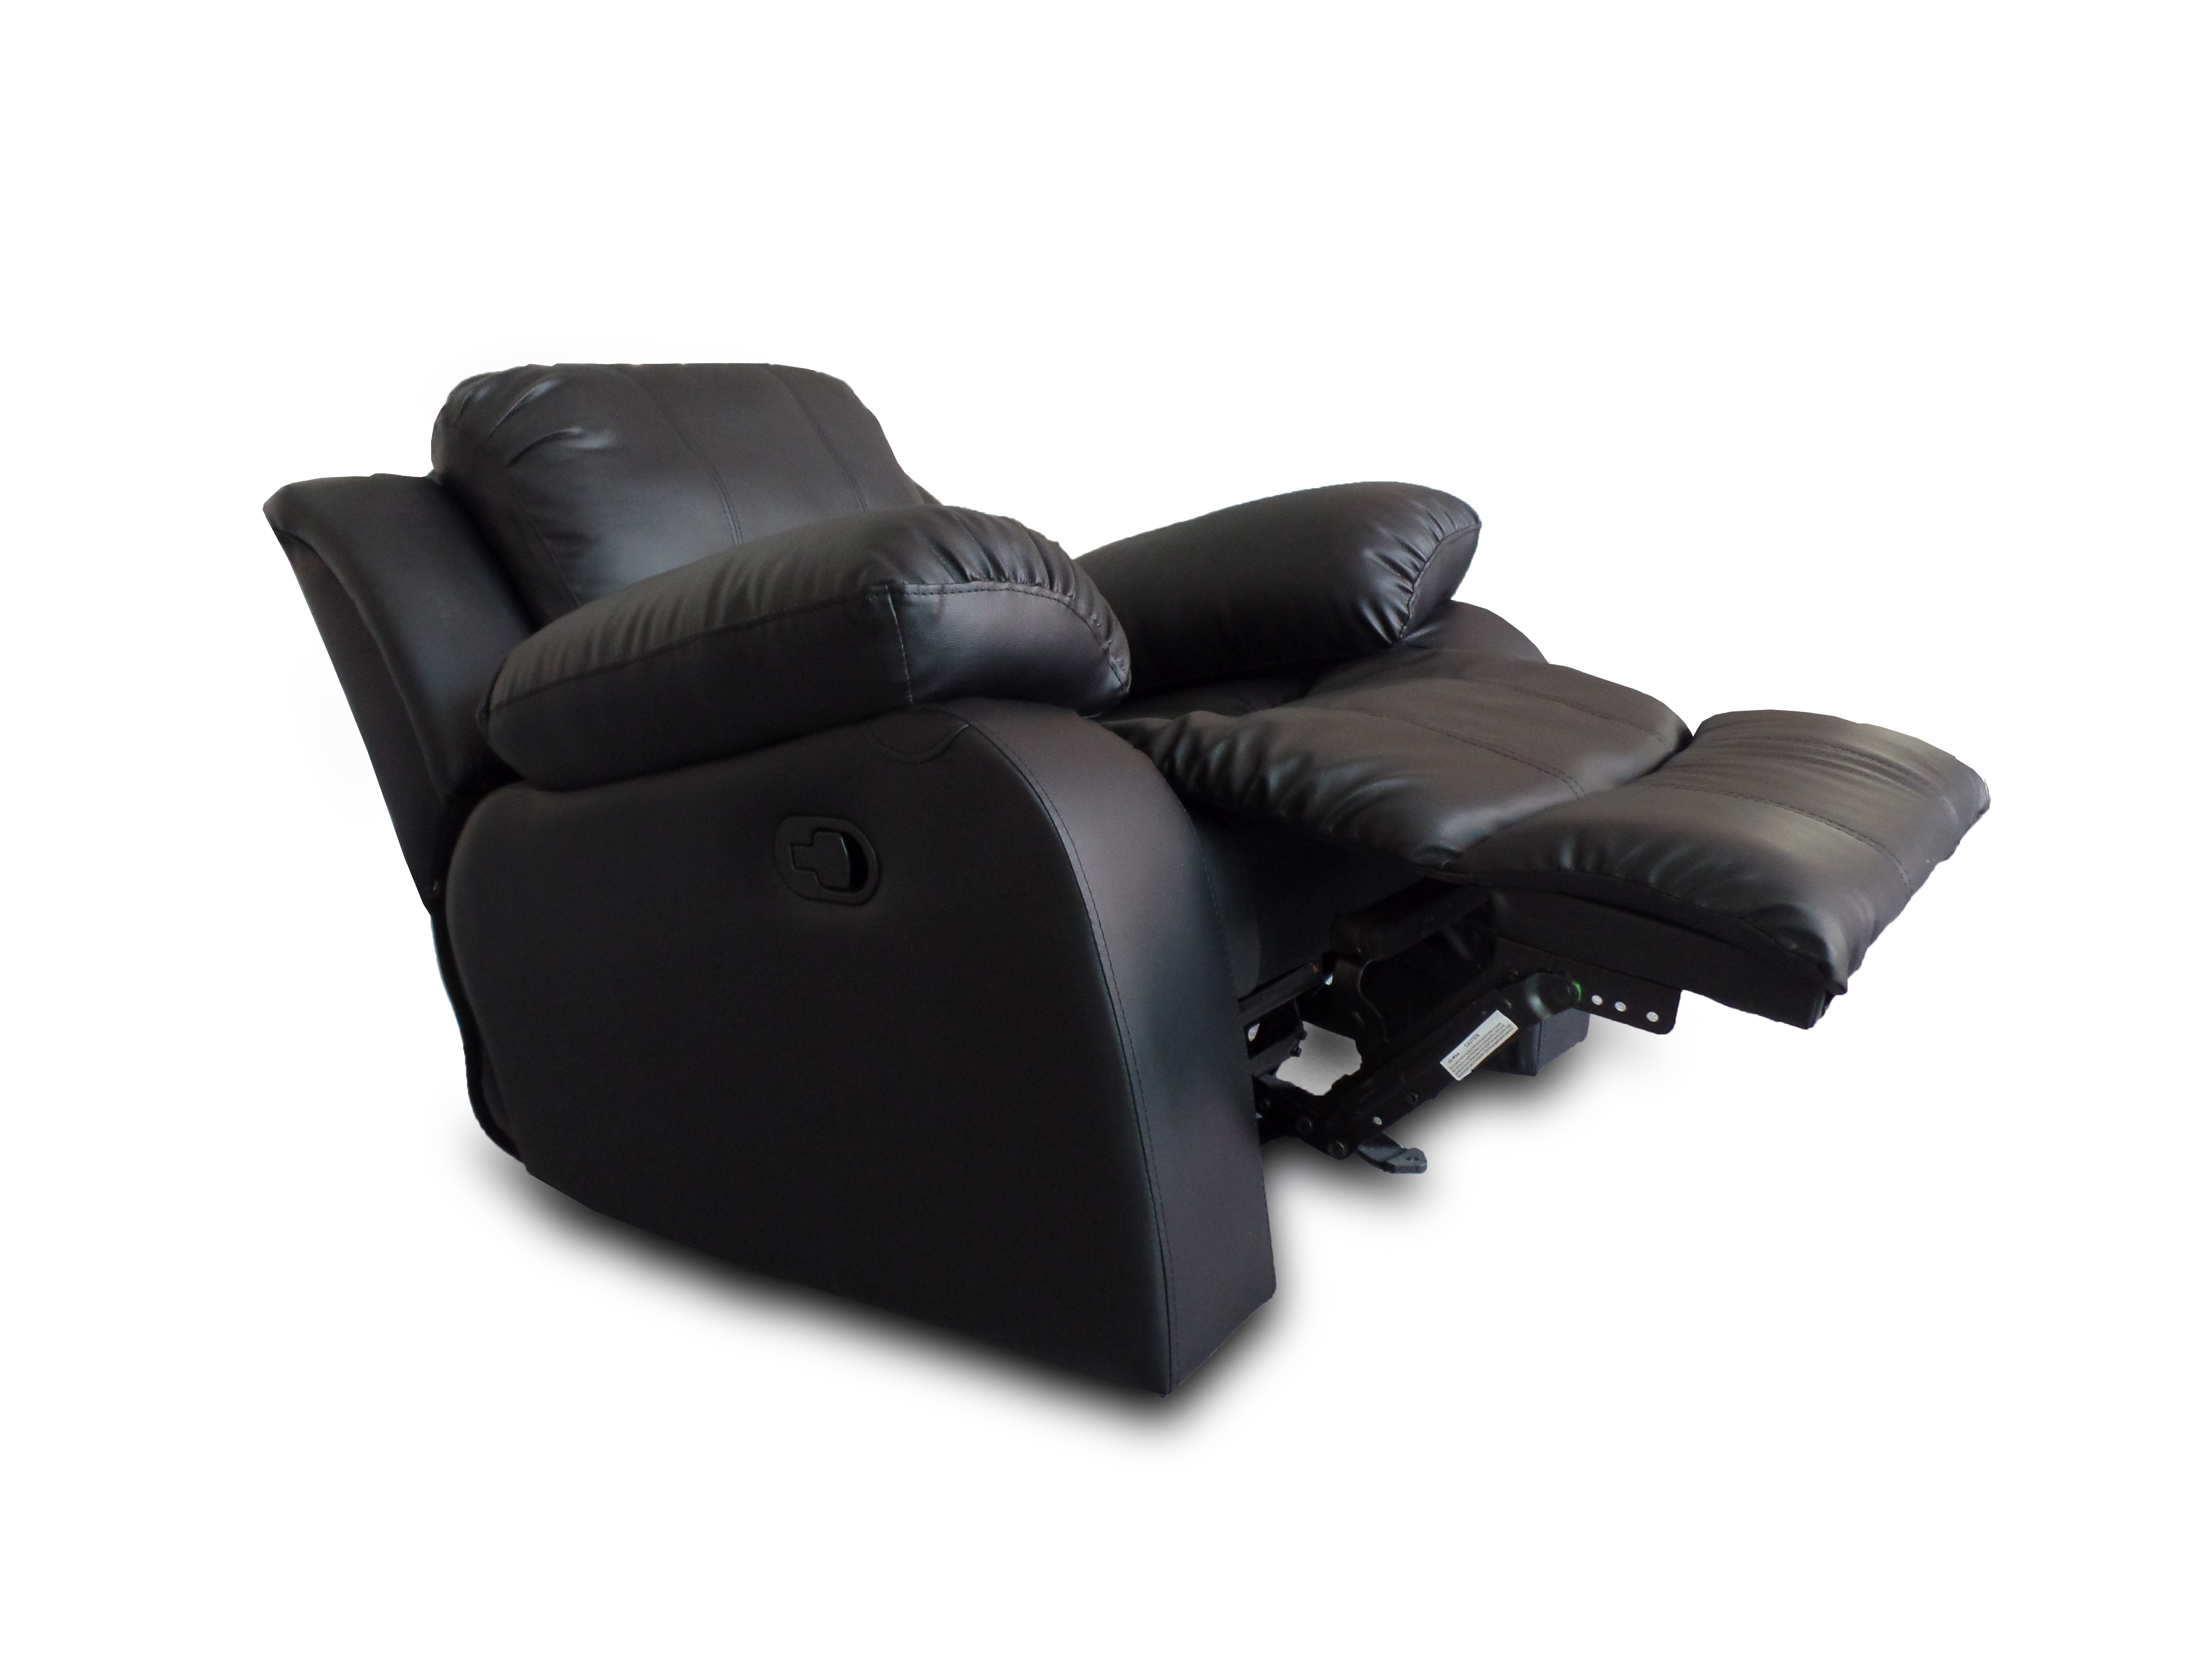 Oversize and Overstuffed Single Seat Bonded Leather Recliner Chair comfortable